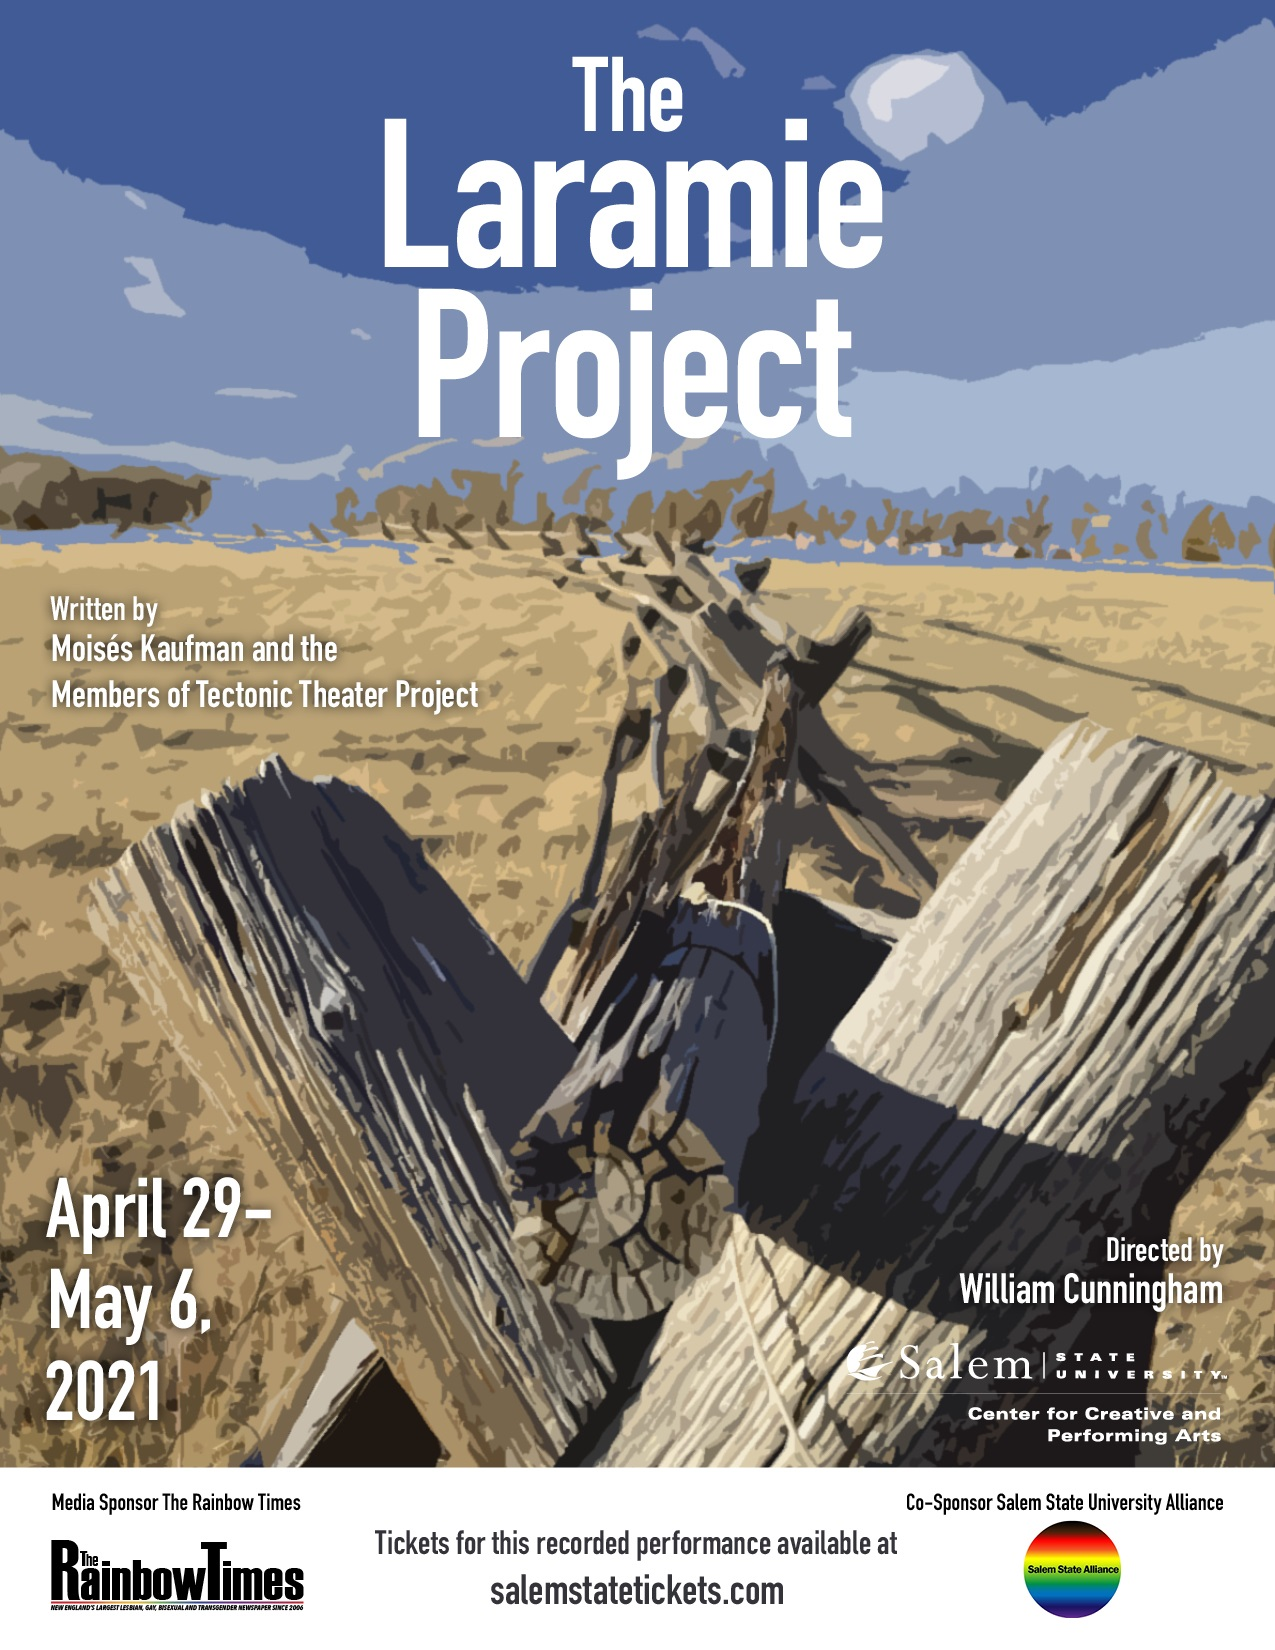 The Laramie Project streams April 29 - May 6